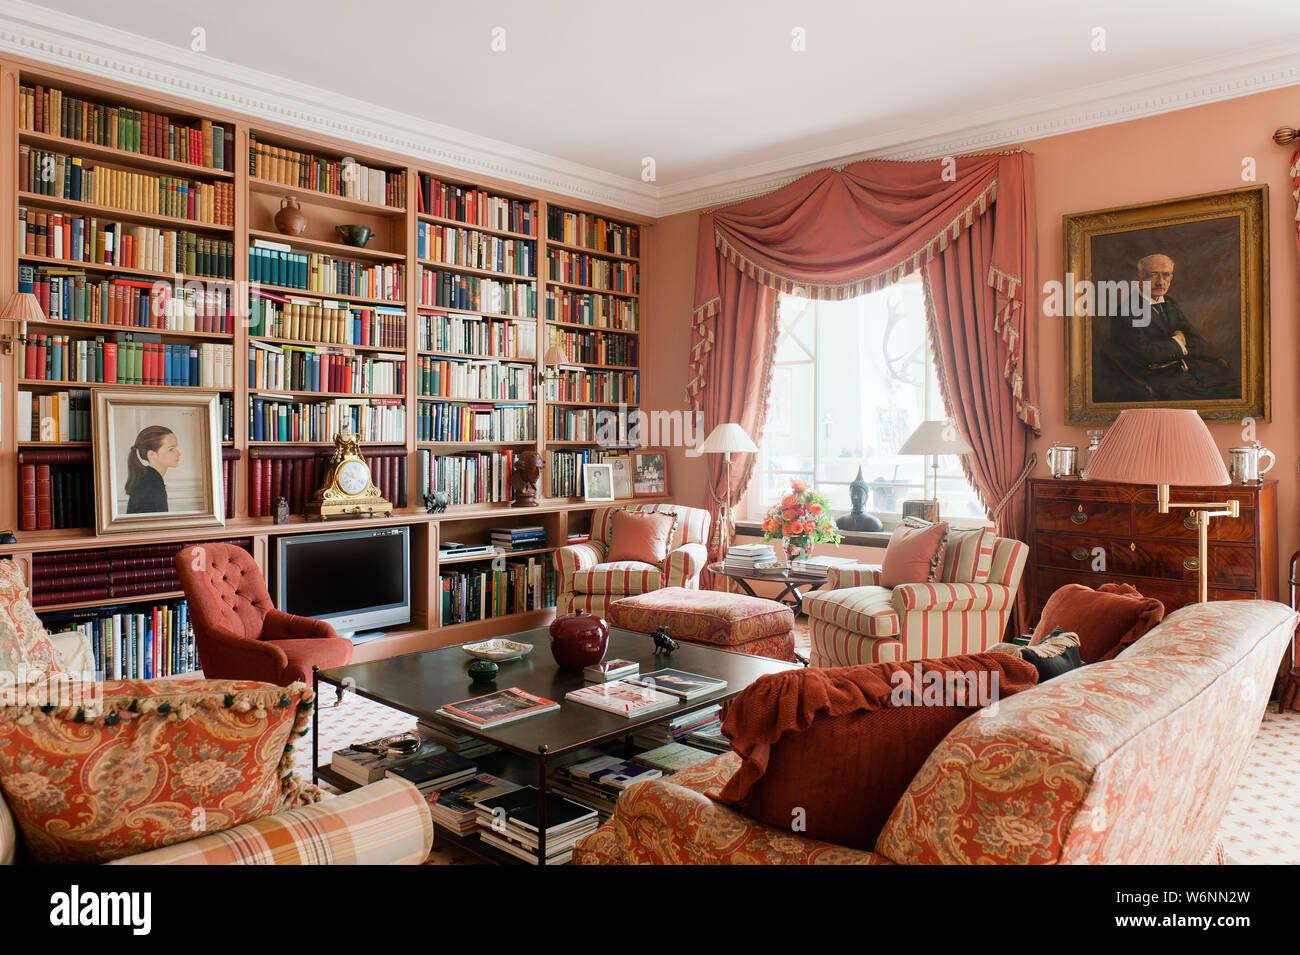 Victorian style living room Stock Photo: 262320993 - Alamy